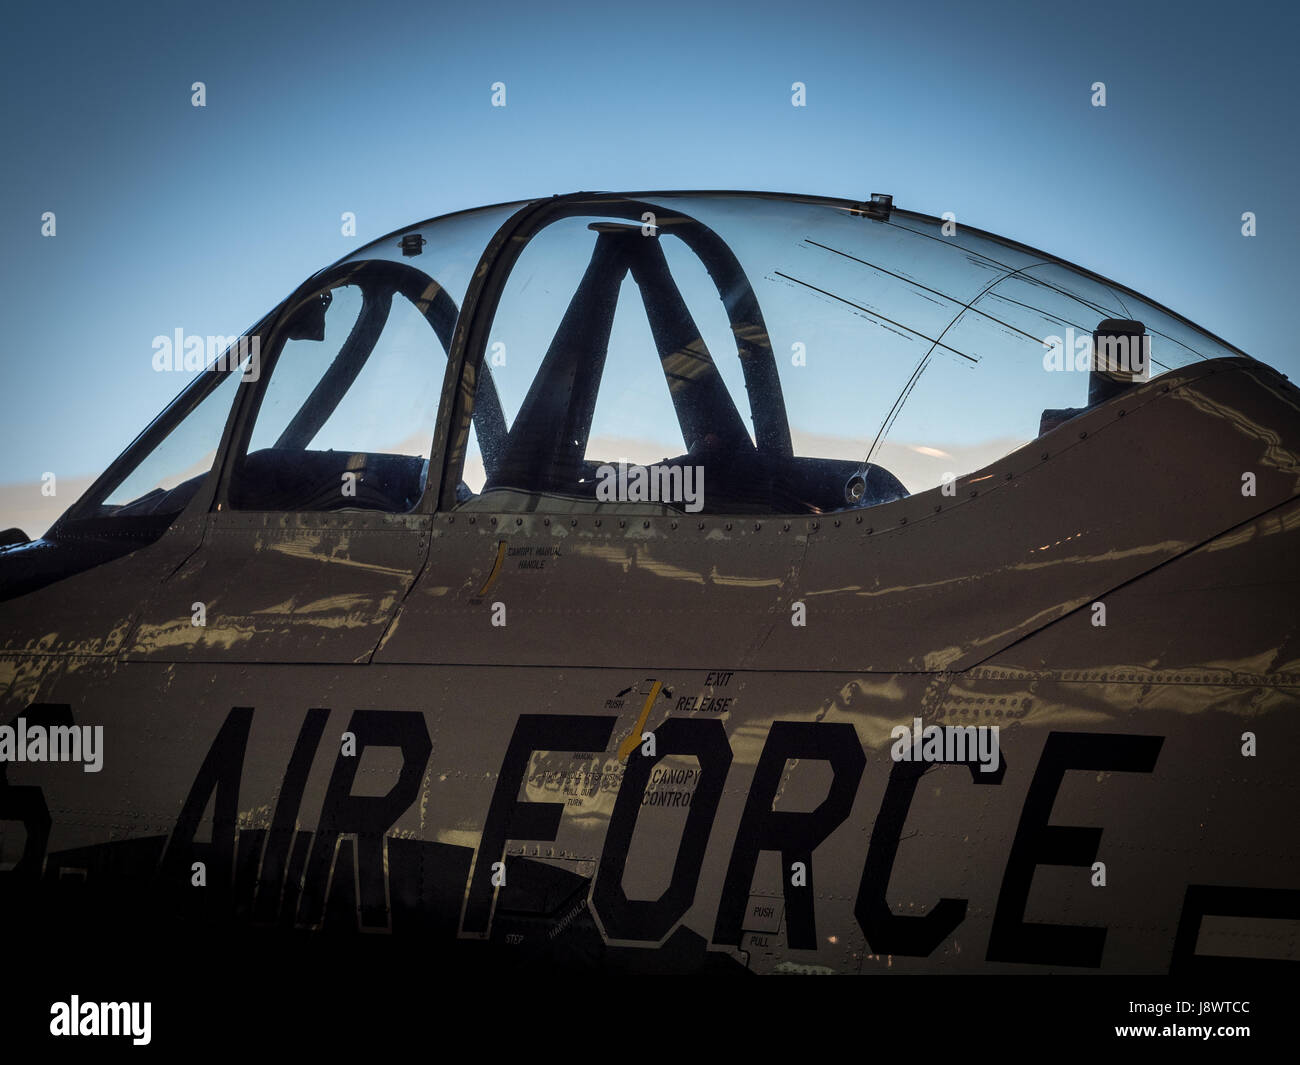 Stylised detail of an air force jet cockpit - Stock Image